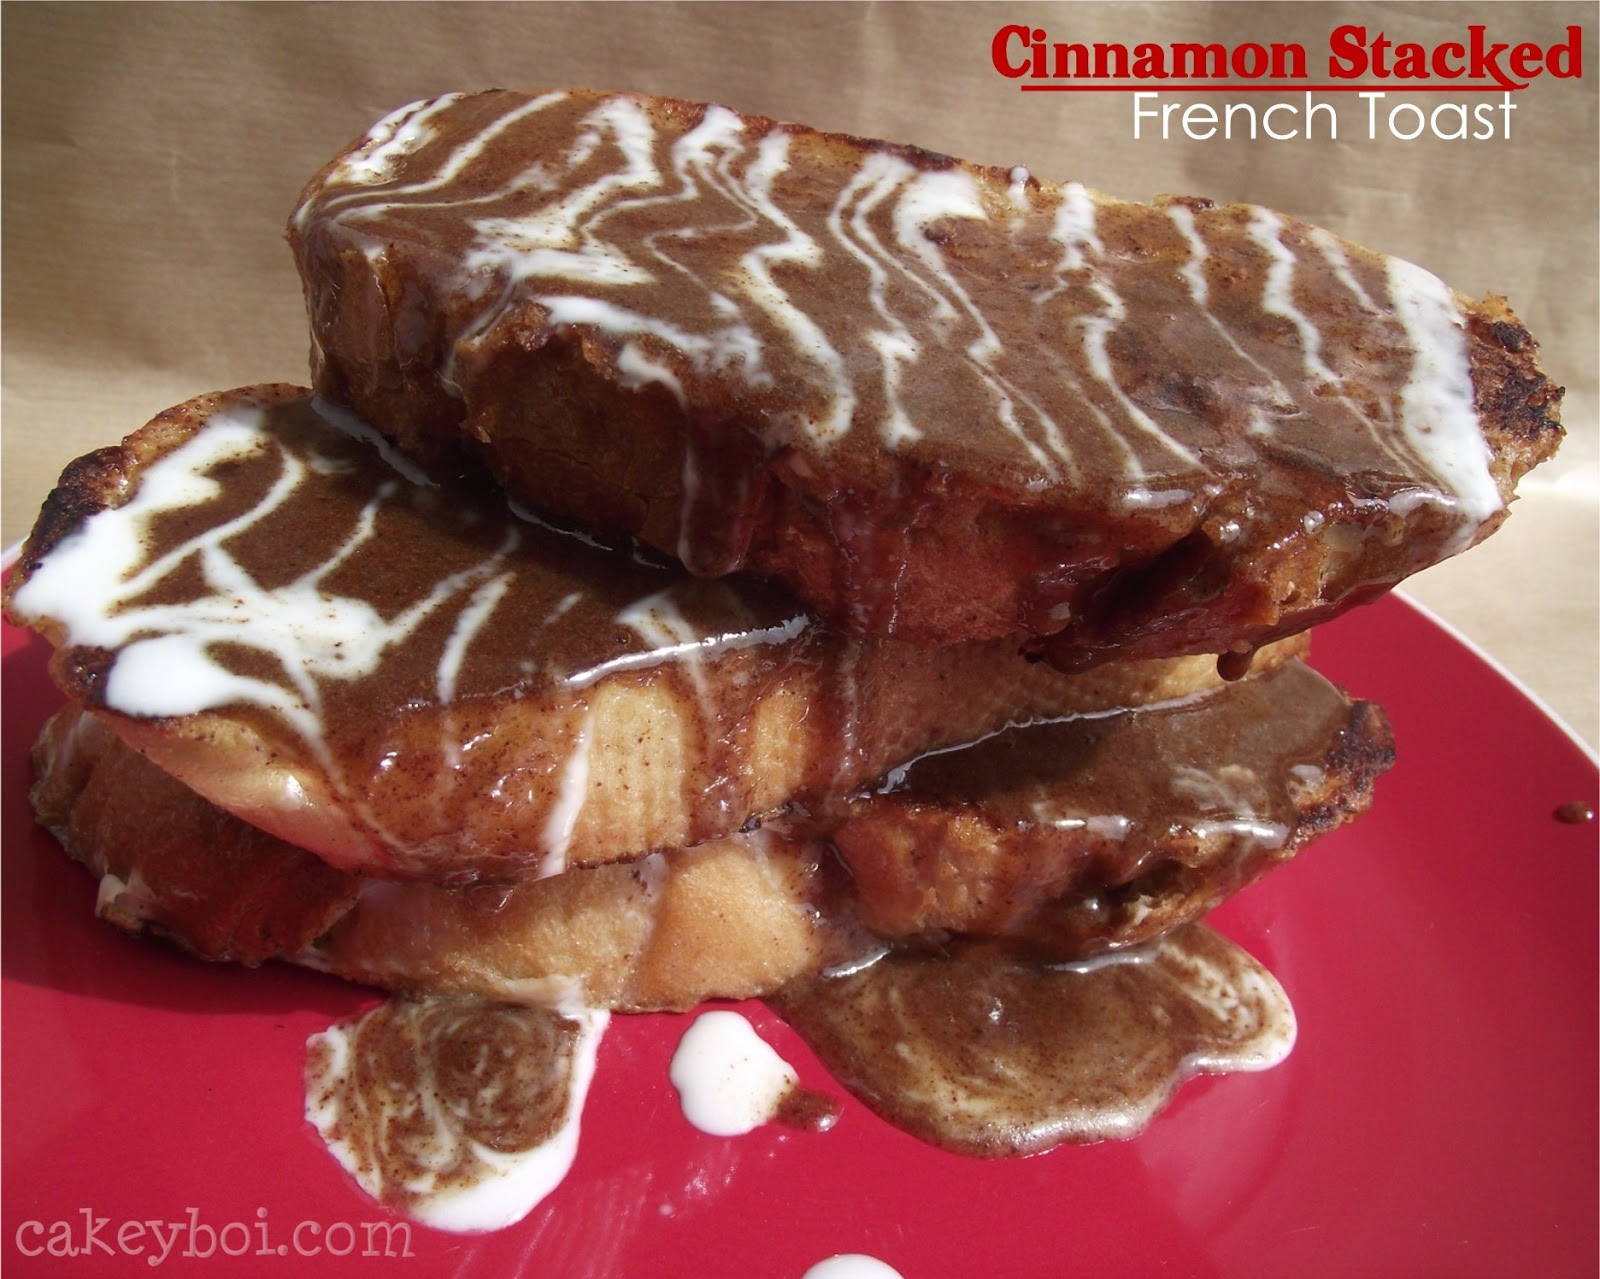 Cinn-A-Stack French Toast